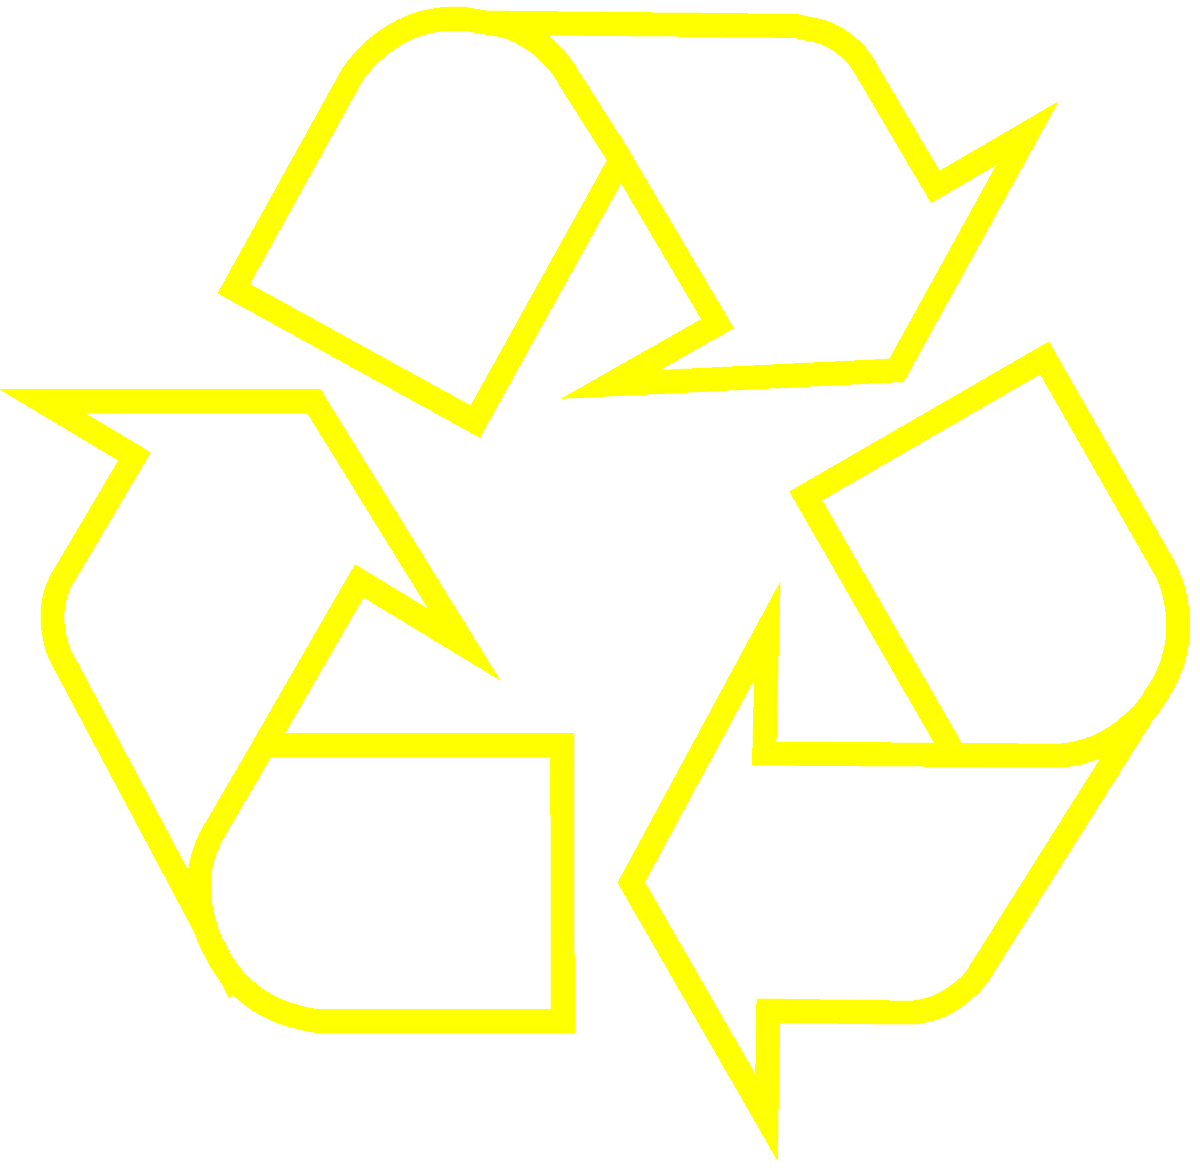 recycling-symbol-icon-outline-yellow